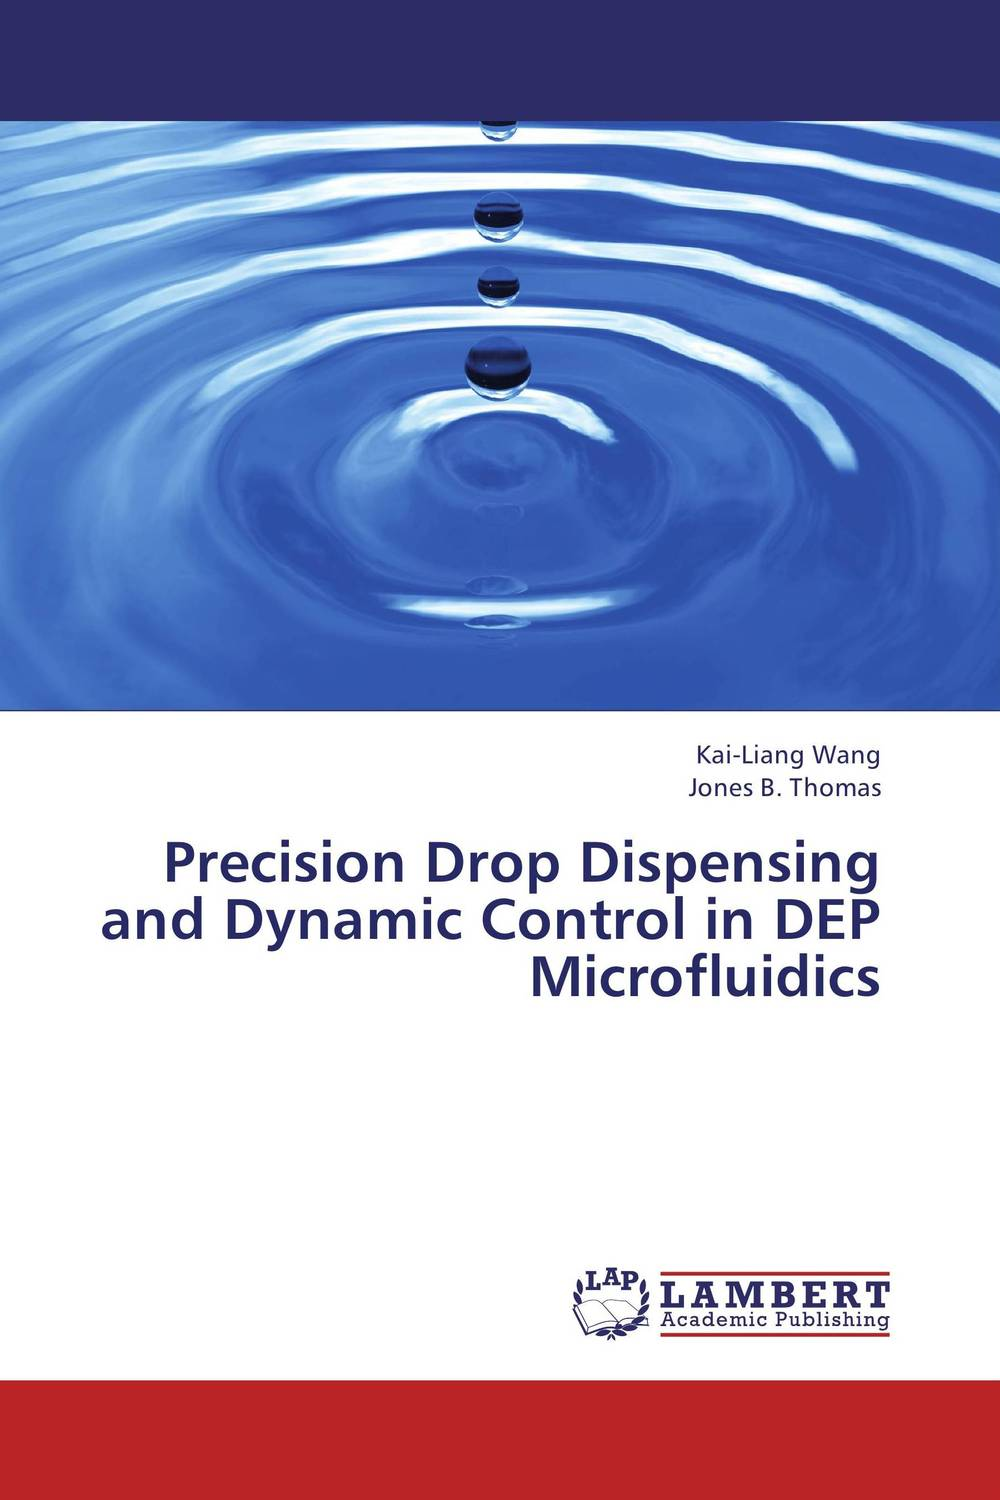 Precision Drop Dispensing and Dynamic Control in DEP Microfluidics economizer forces heat transmission from liquid to vapour effectively and keep pressure drop down to a reasonable level